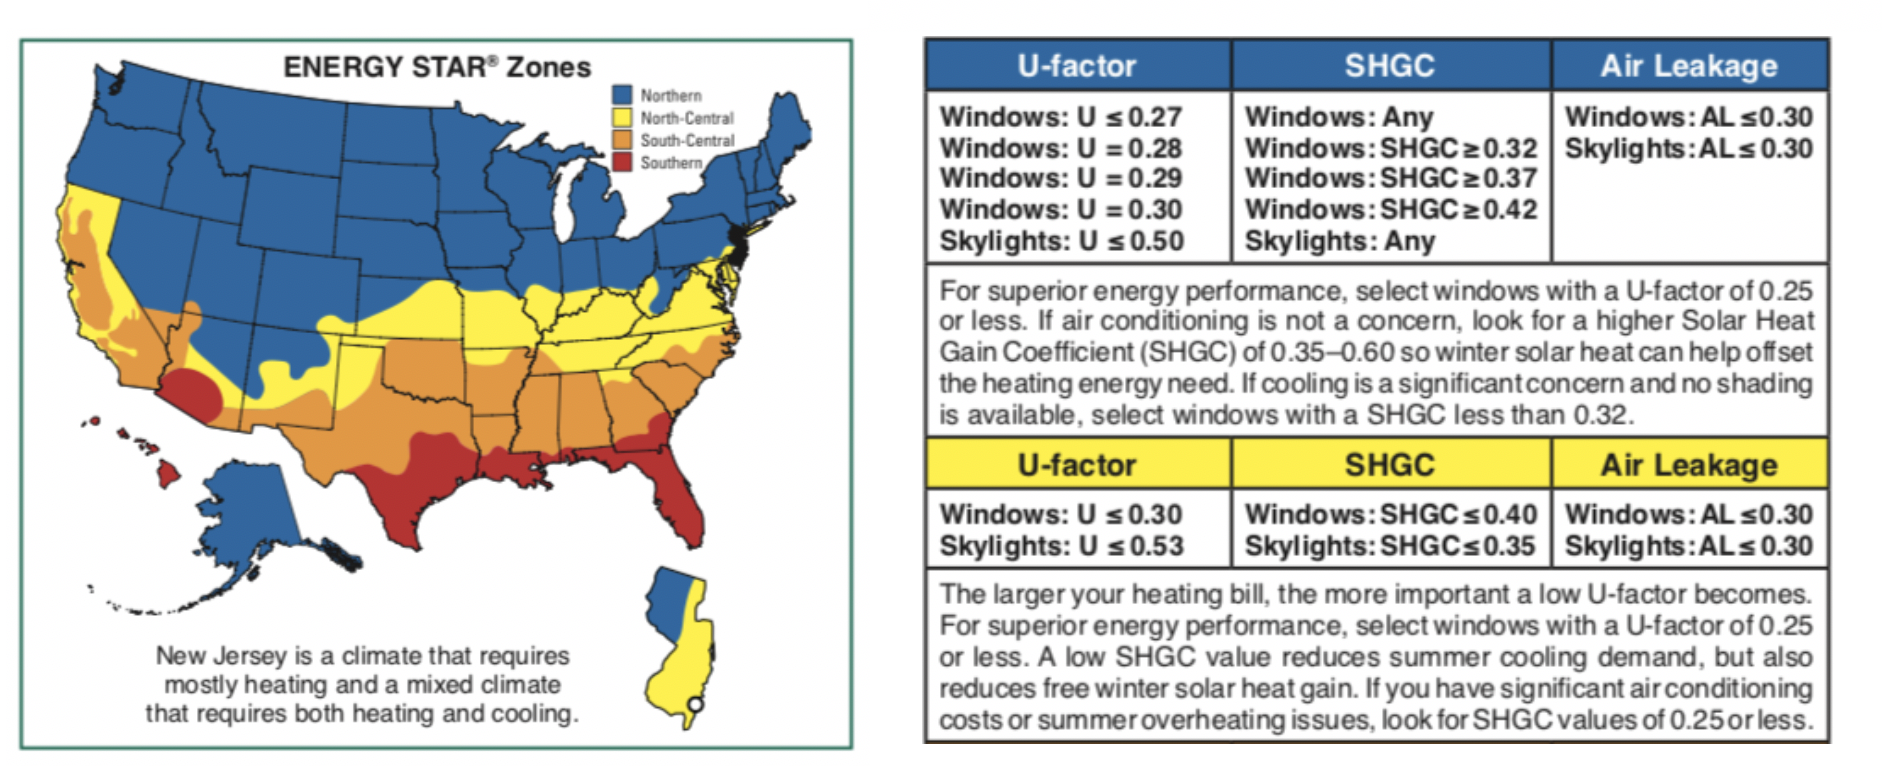 Figure 2 – ENERGY STAR Recommended U-factor, SHGC and Air Leakage values for New Jersey's Mixed Climate (Source: The Efficient Windows Collaborative).